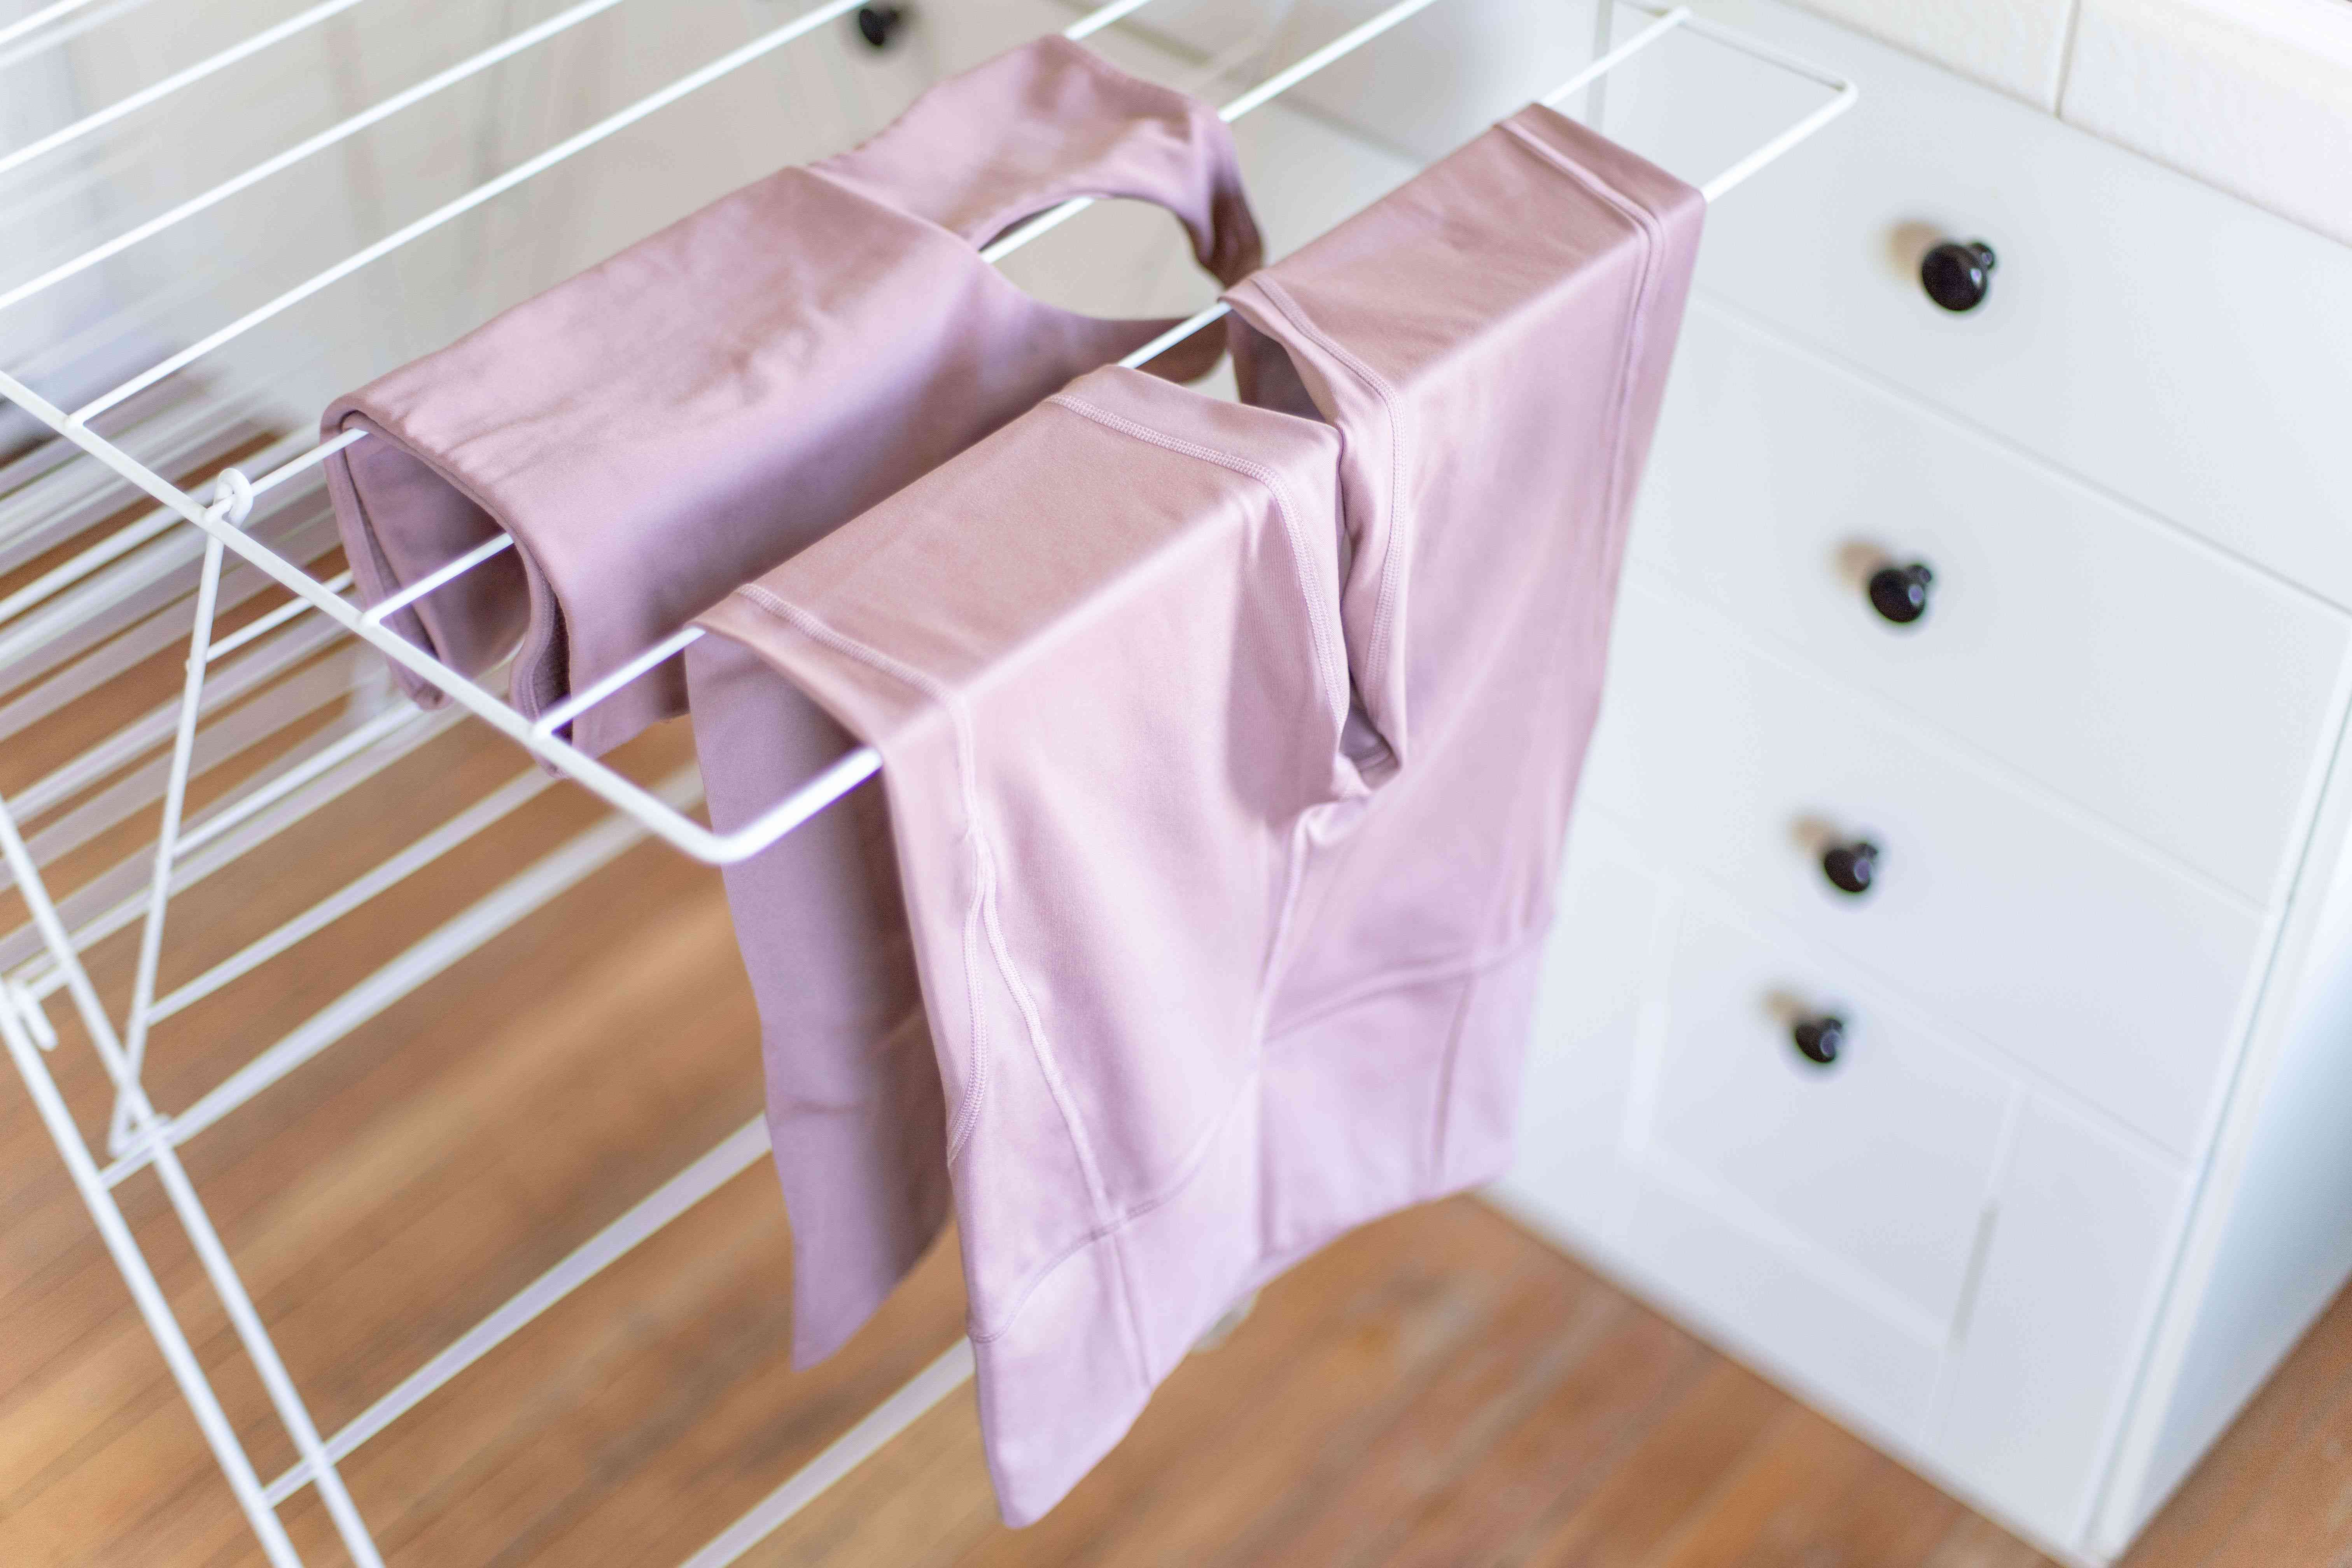 Allowing garments to air dry